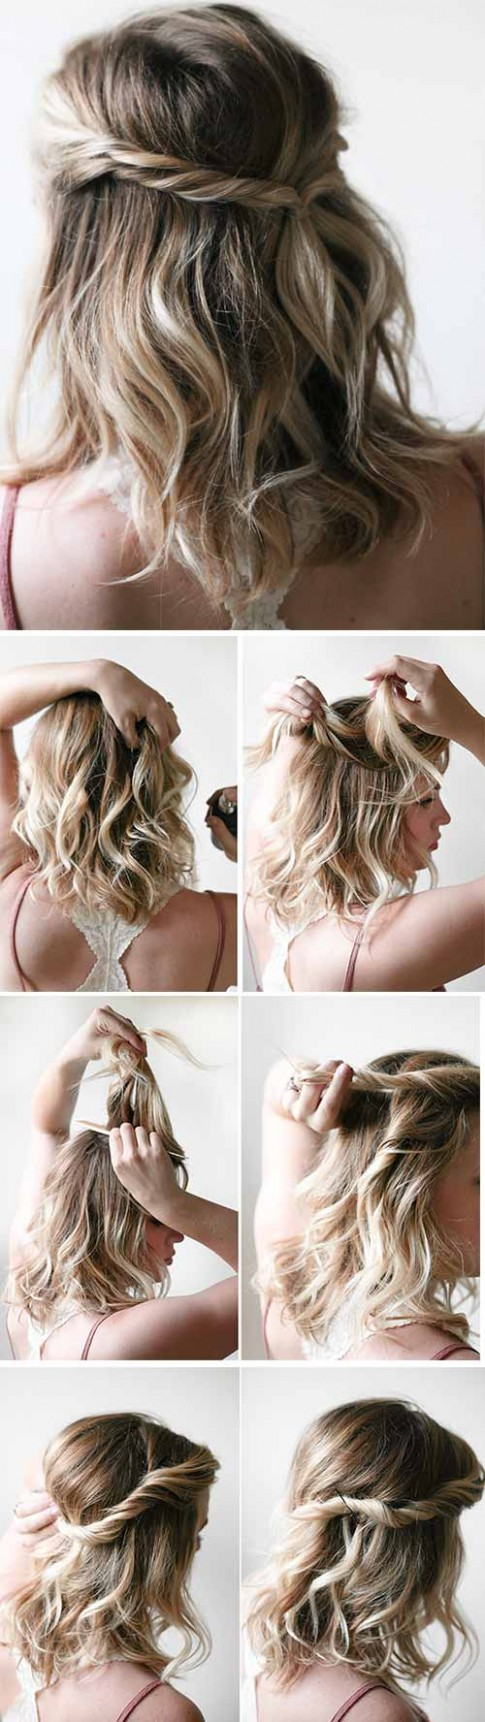 11 Incredible DIY Short Hairstyles A Step By Step Guide Simple Hairstyles For Short Hair